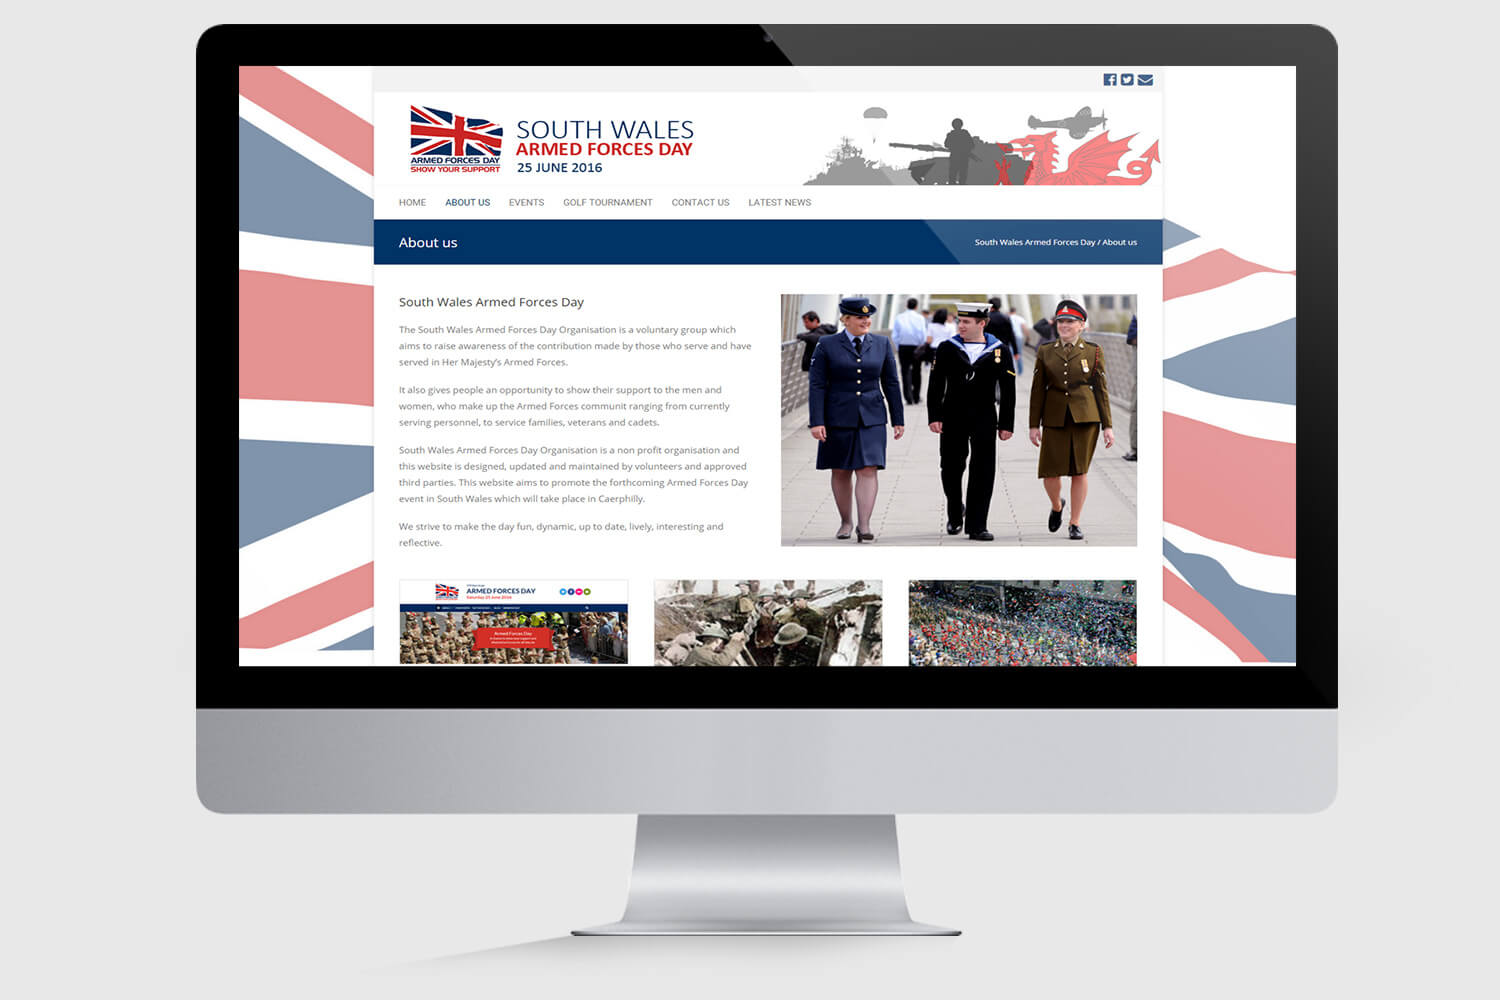 South Wales Armed Forces Day Mockup 3